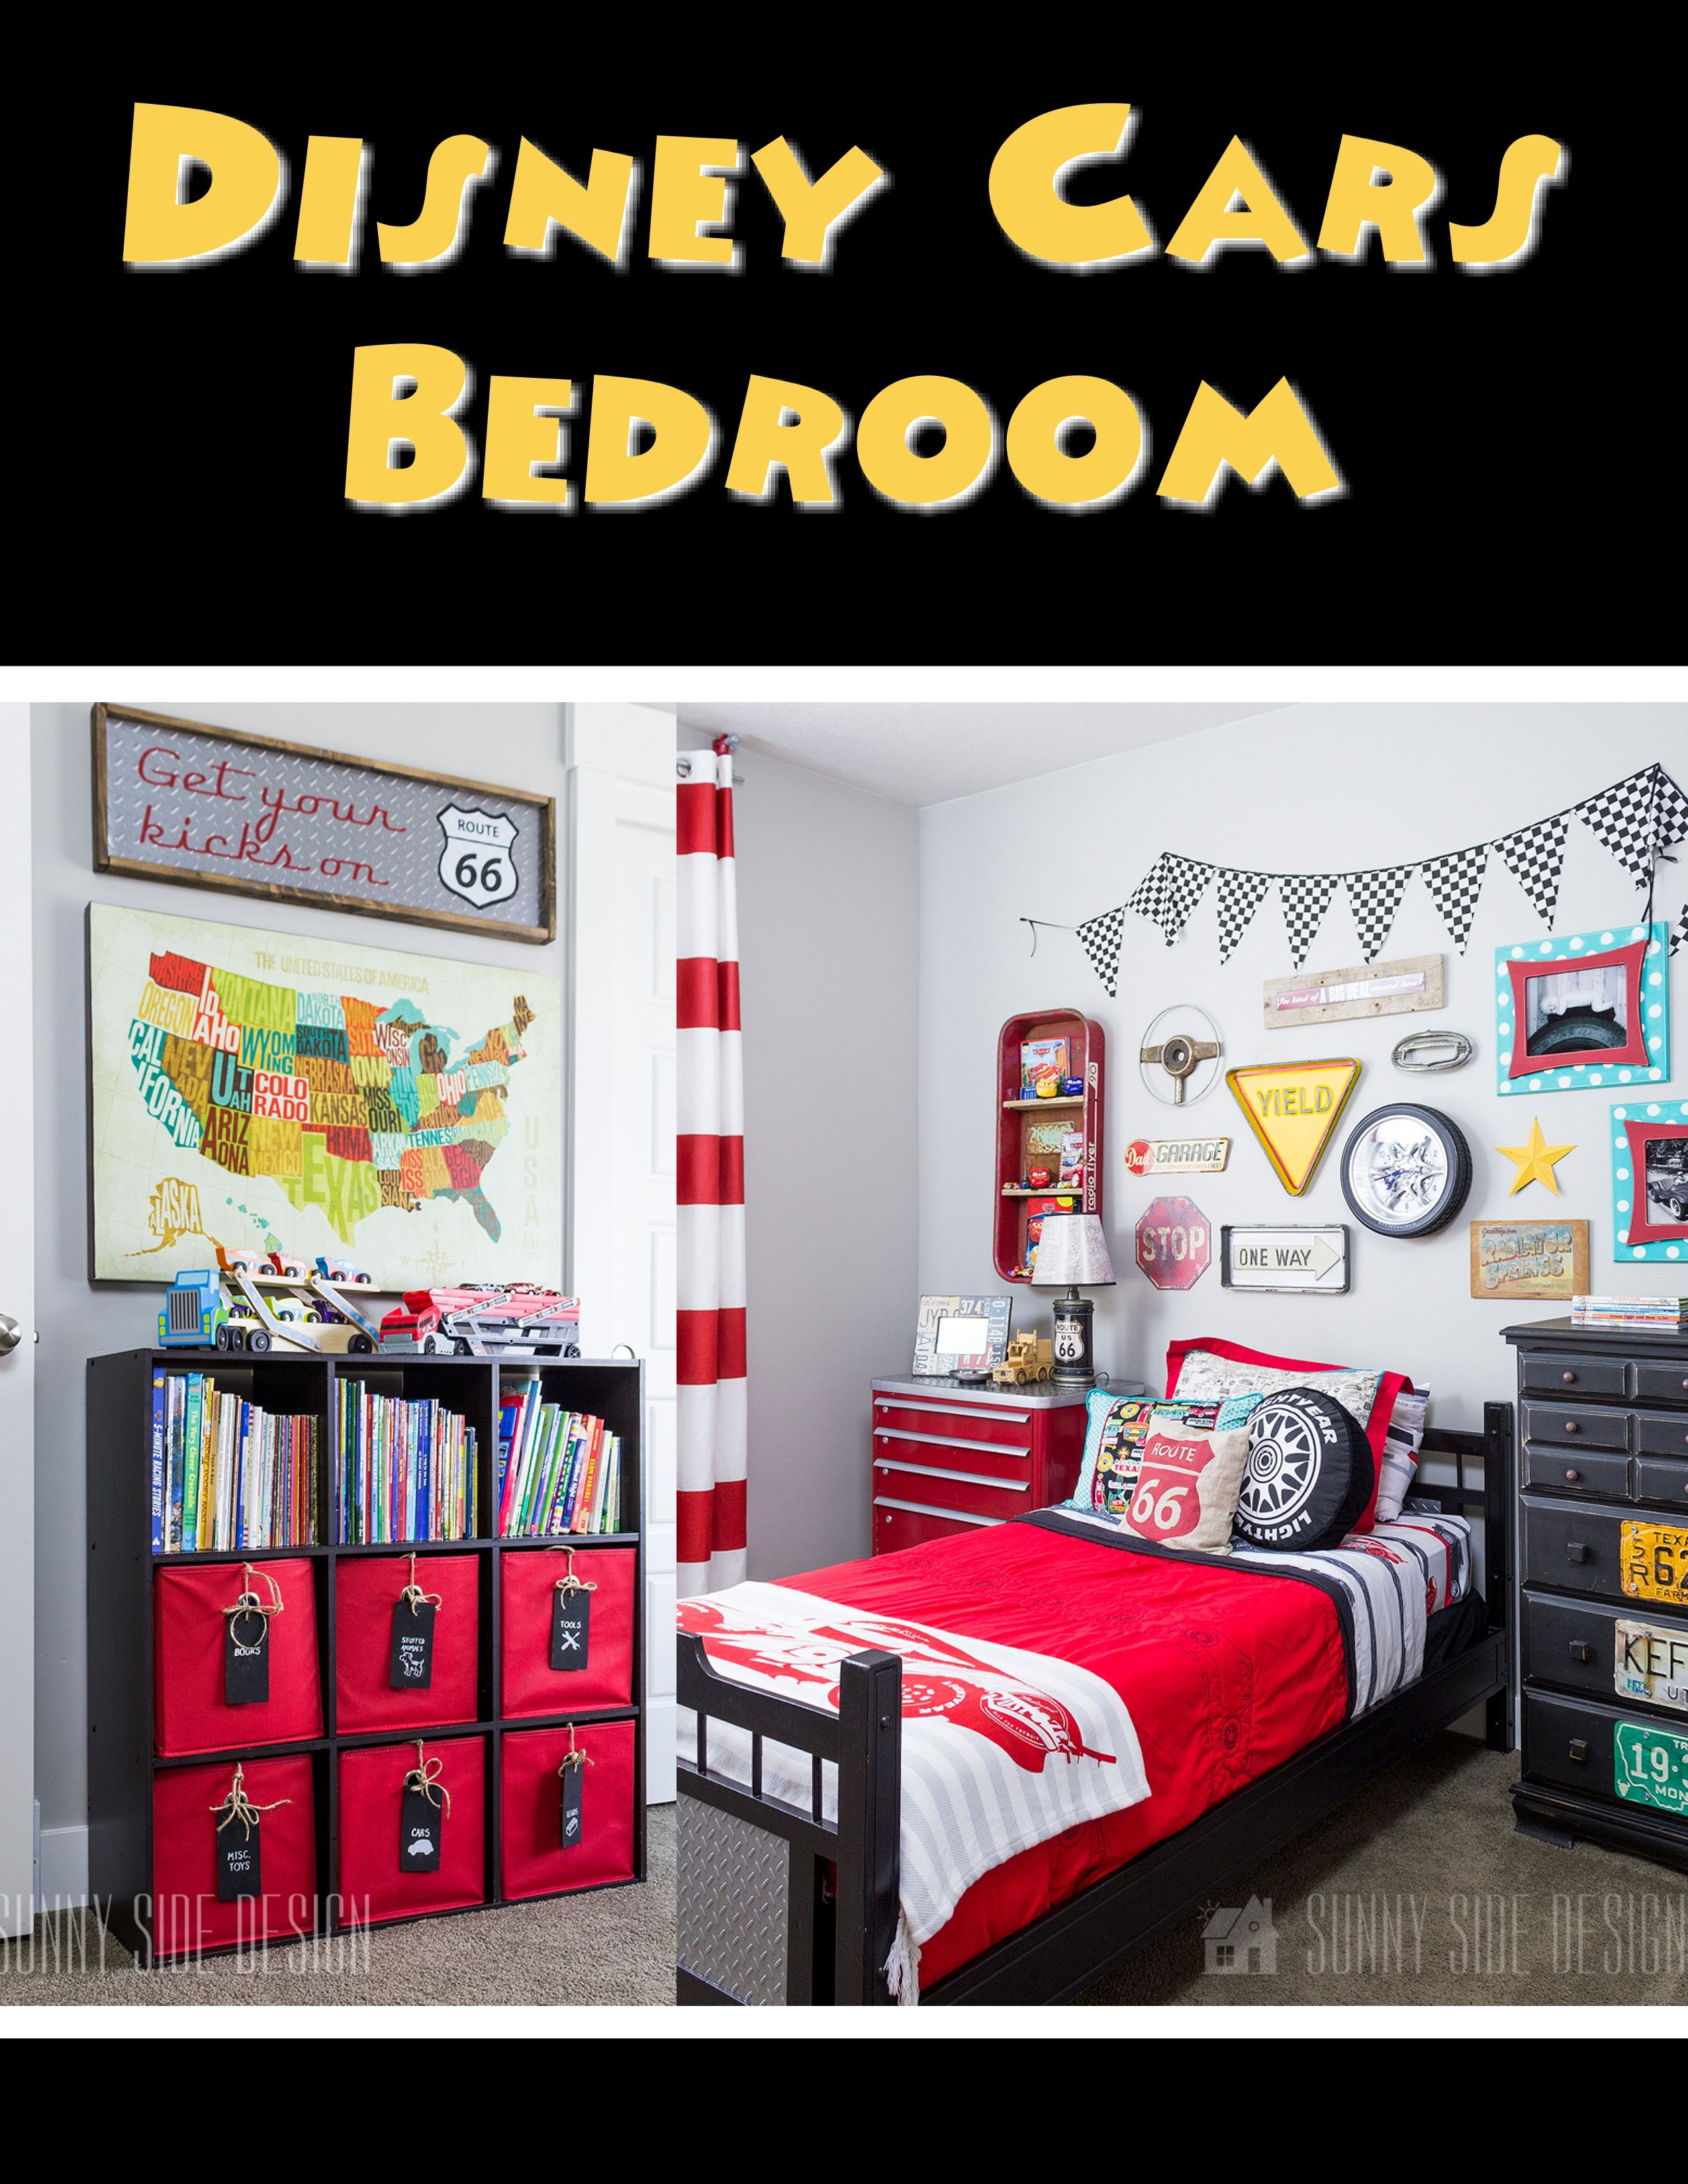 Looking for some fresh ideas on how to decorate a Disney Cars Bedroom without going over the top? This room features a simple Lightning McQueen Bedspread accented with Route 66 decor throughout the room. This gives the room a hint of Disney Cars without having a juvenile print your child will grow out of quickly. Check out all of the Car details in our post! Tell us what your favorite element in the room is. #disneycarsbedroom #bedroomdesign #boybedroom #boysbedroom #boysbedroomdesign